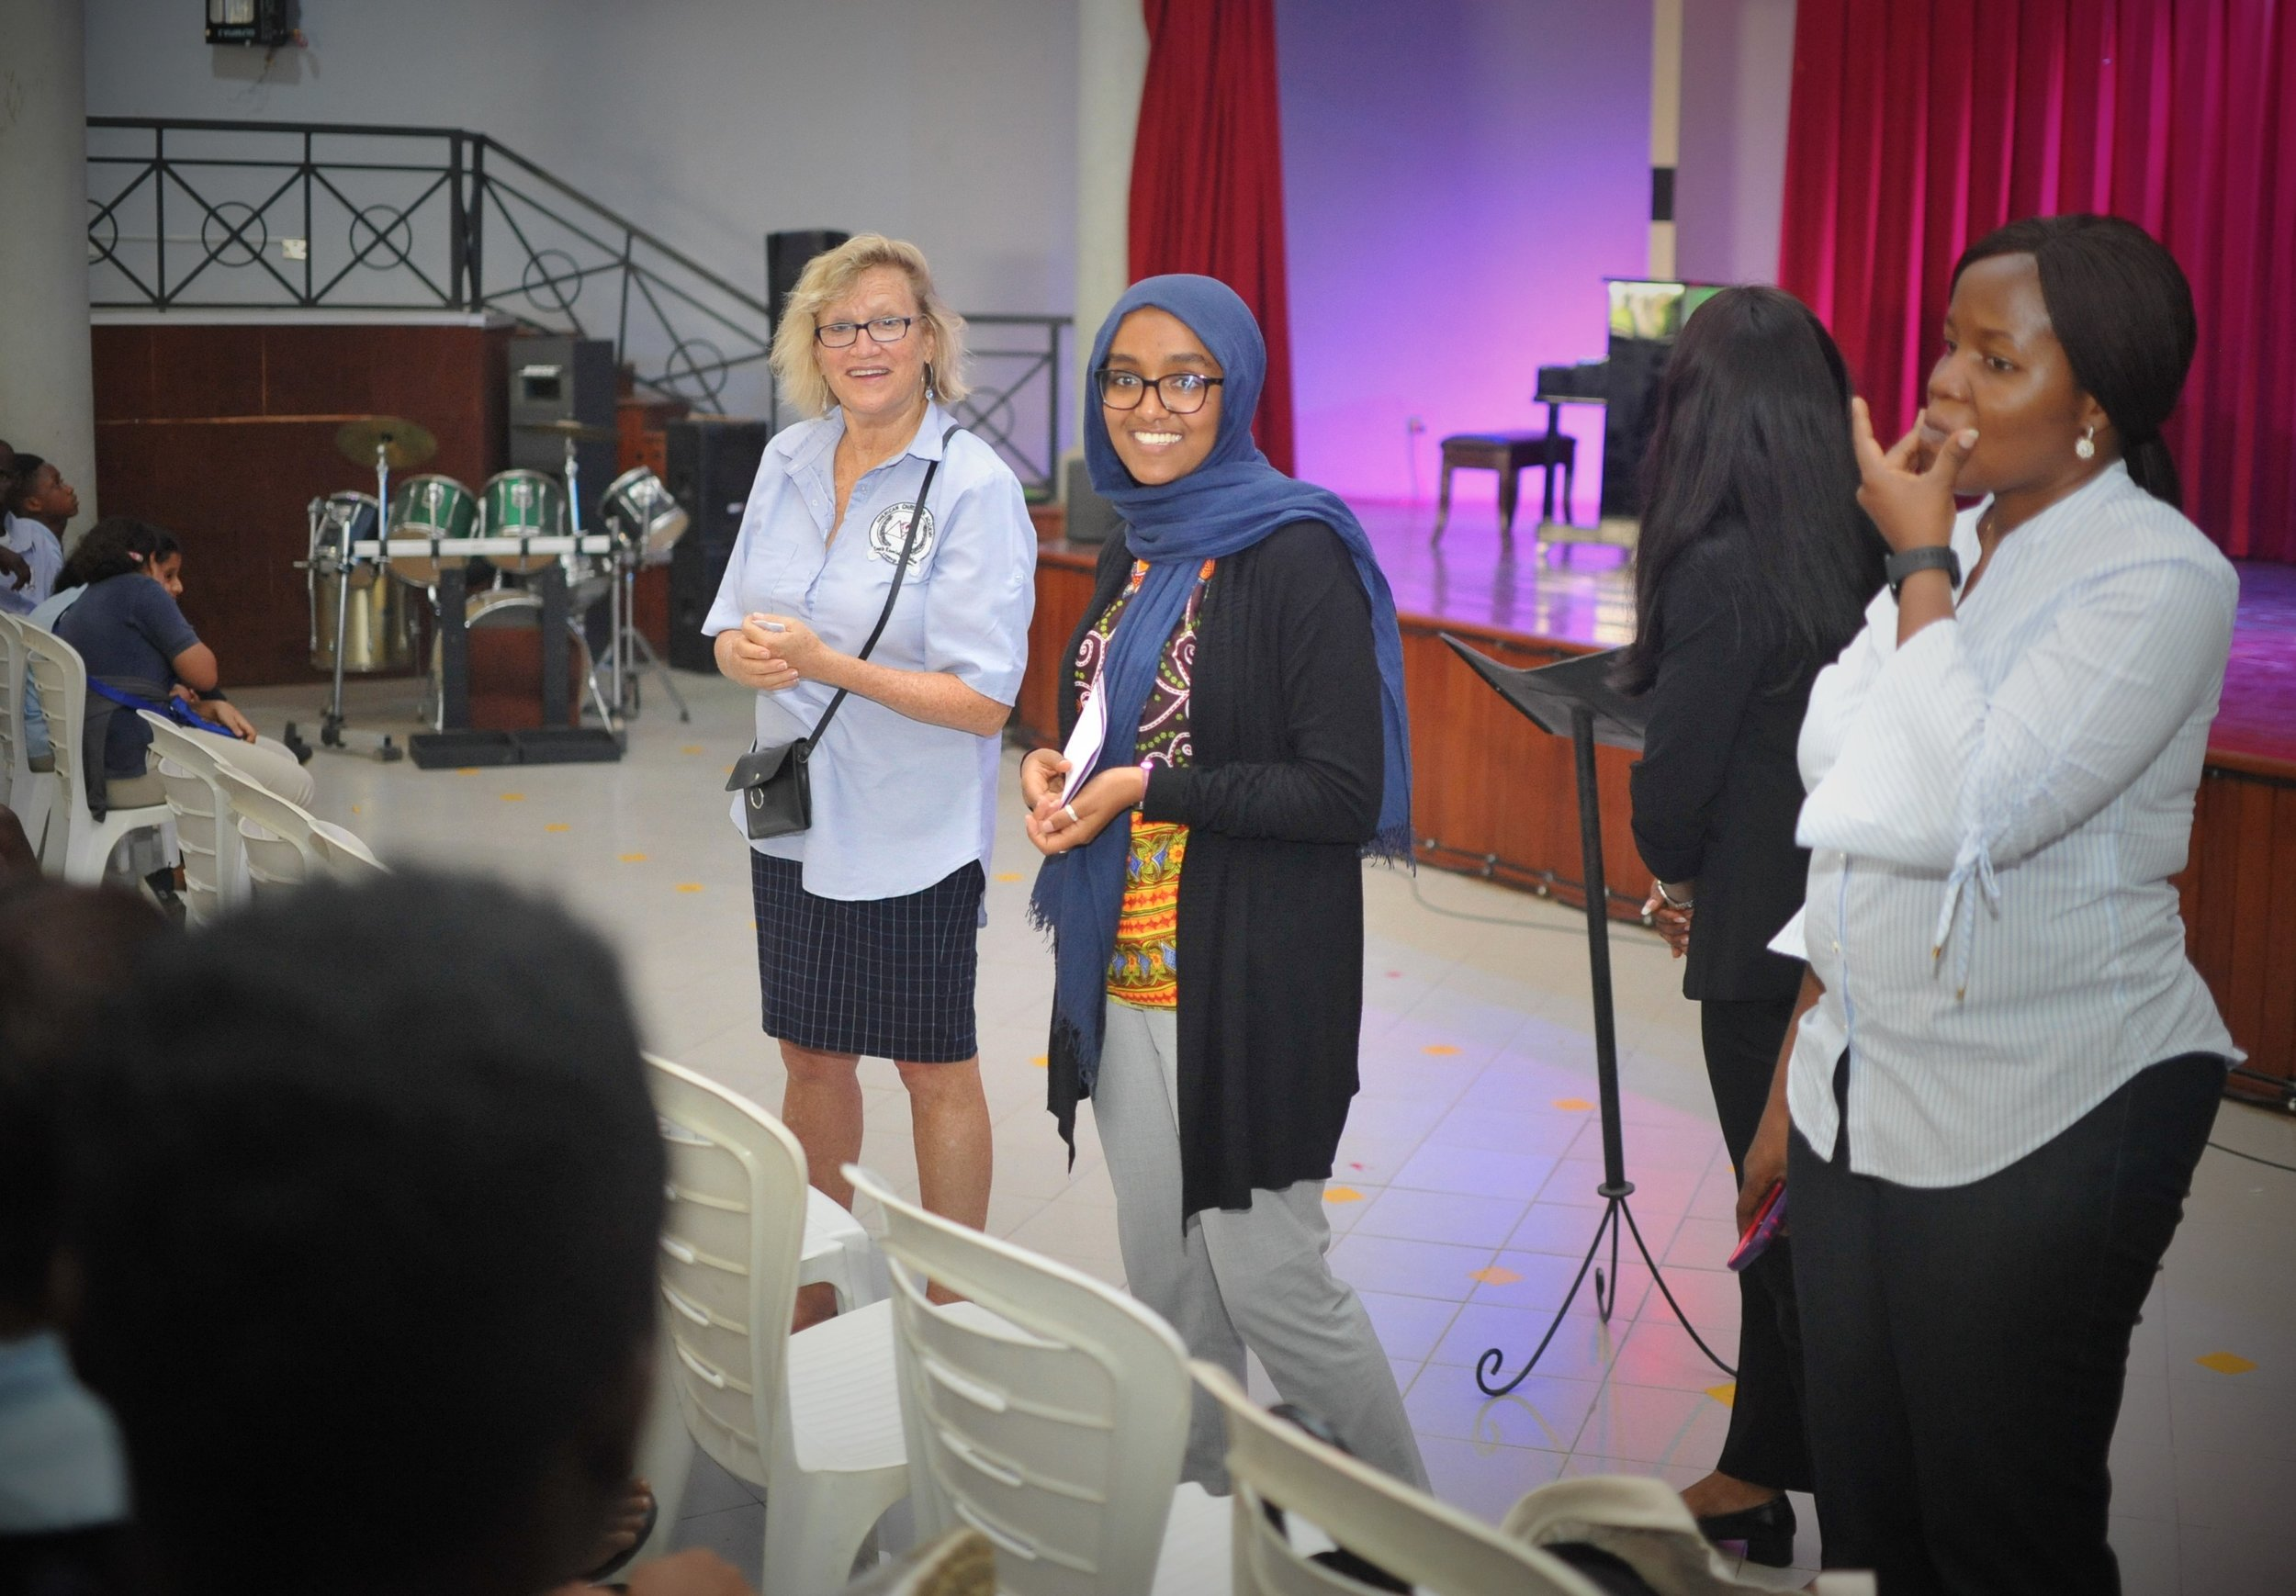 During assembly, Senior school students gathered information from the US consulate officers from New York University, NYU at Abu Dhabi in the UAE.